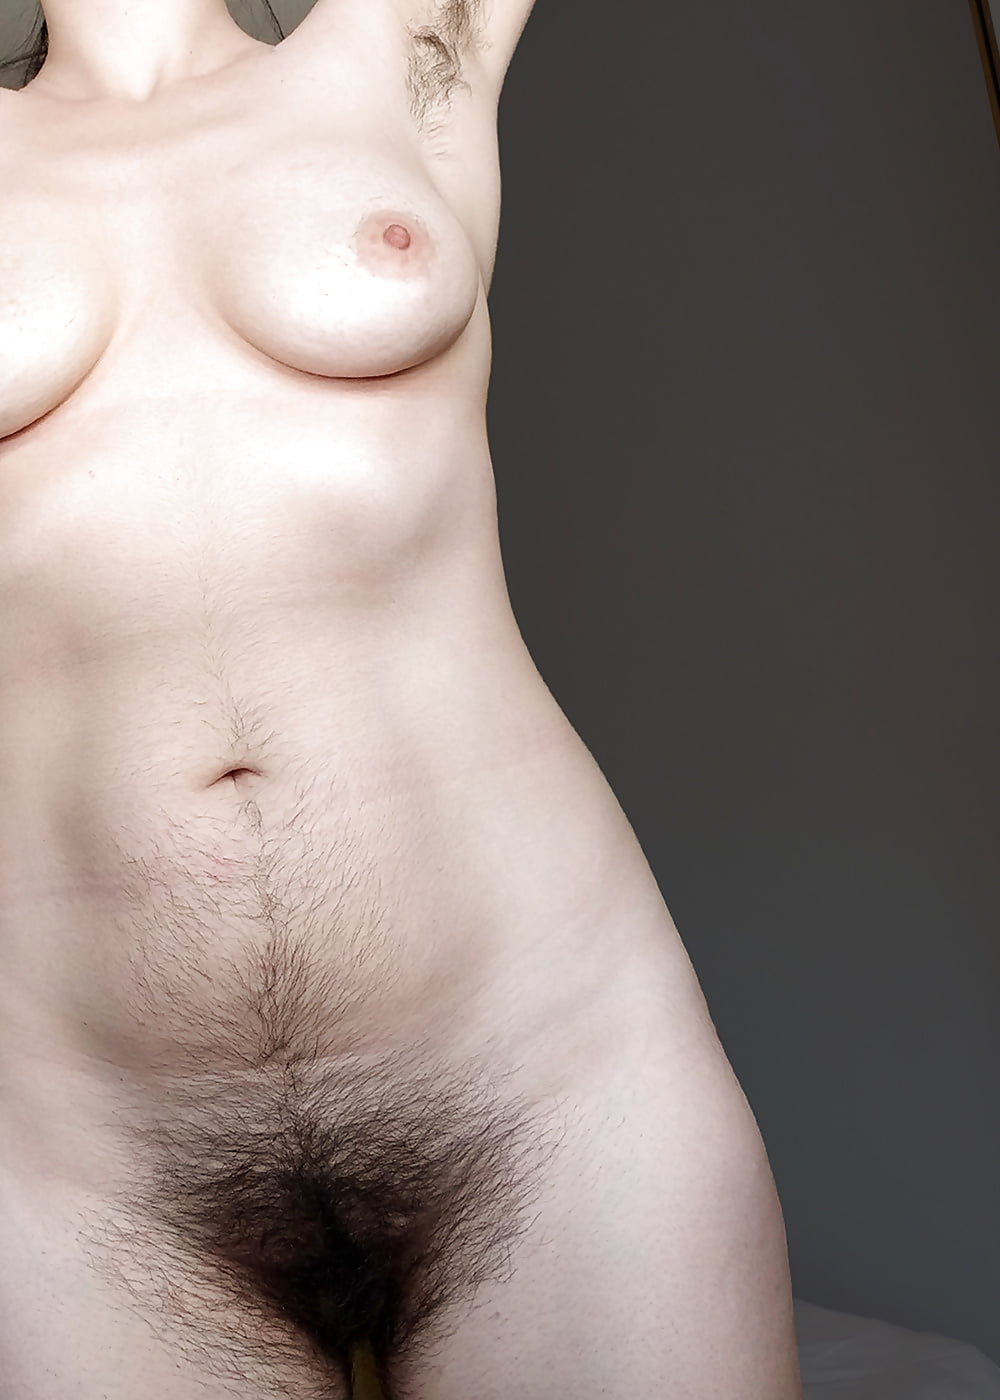 Anal naked women with scars naked